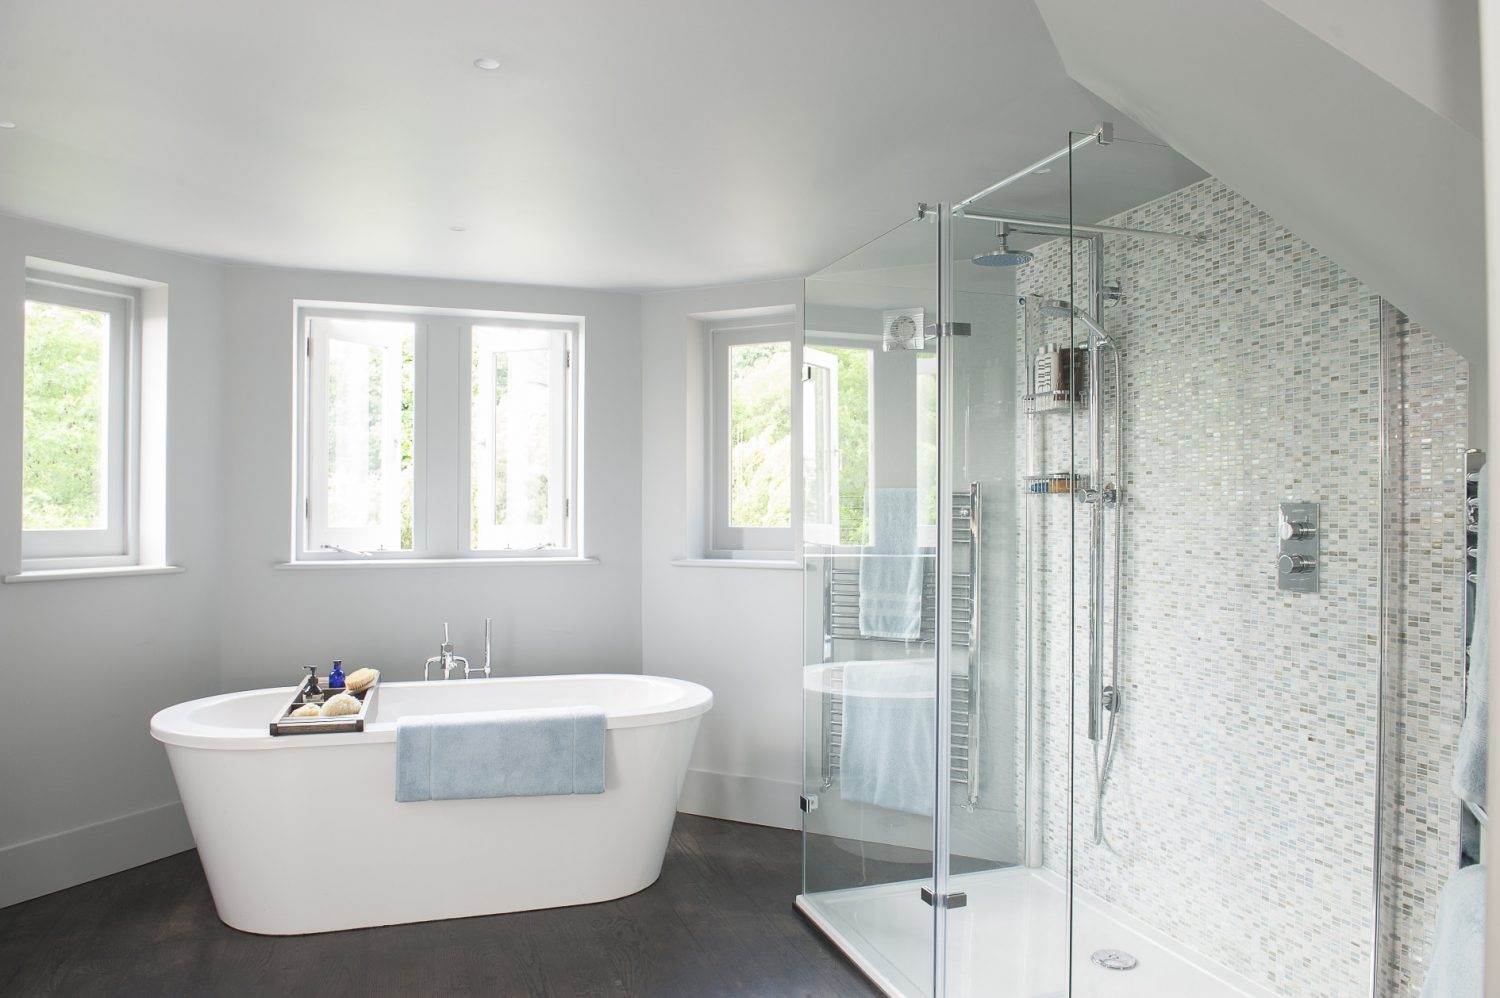 The en suite bathroom in the master suite occupies one of the upper rooms of the octagonal tower, which links the new extension with the original building. Light pours in through four windows